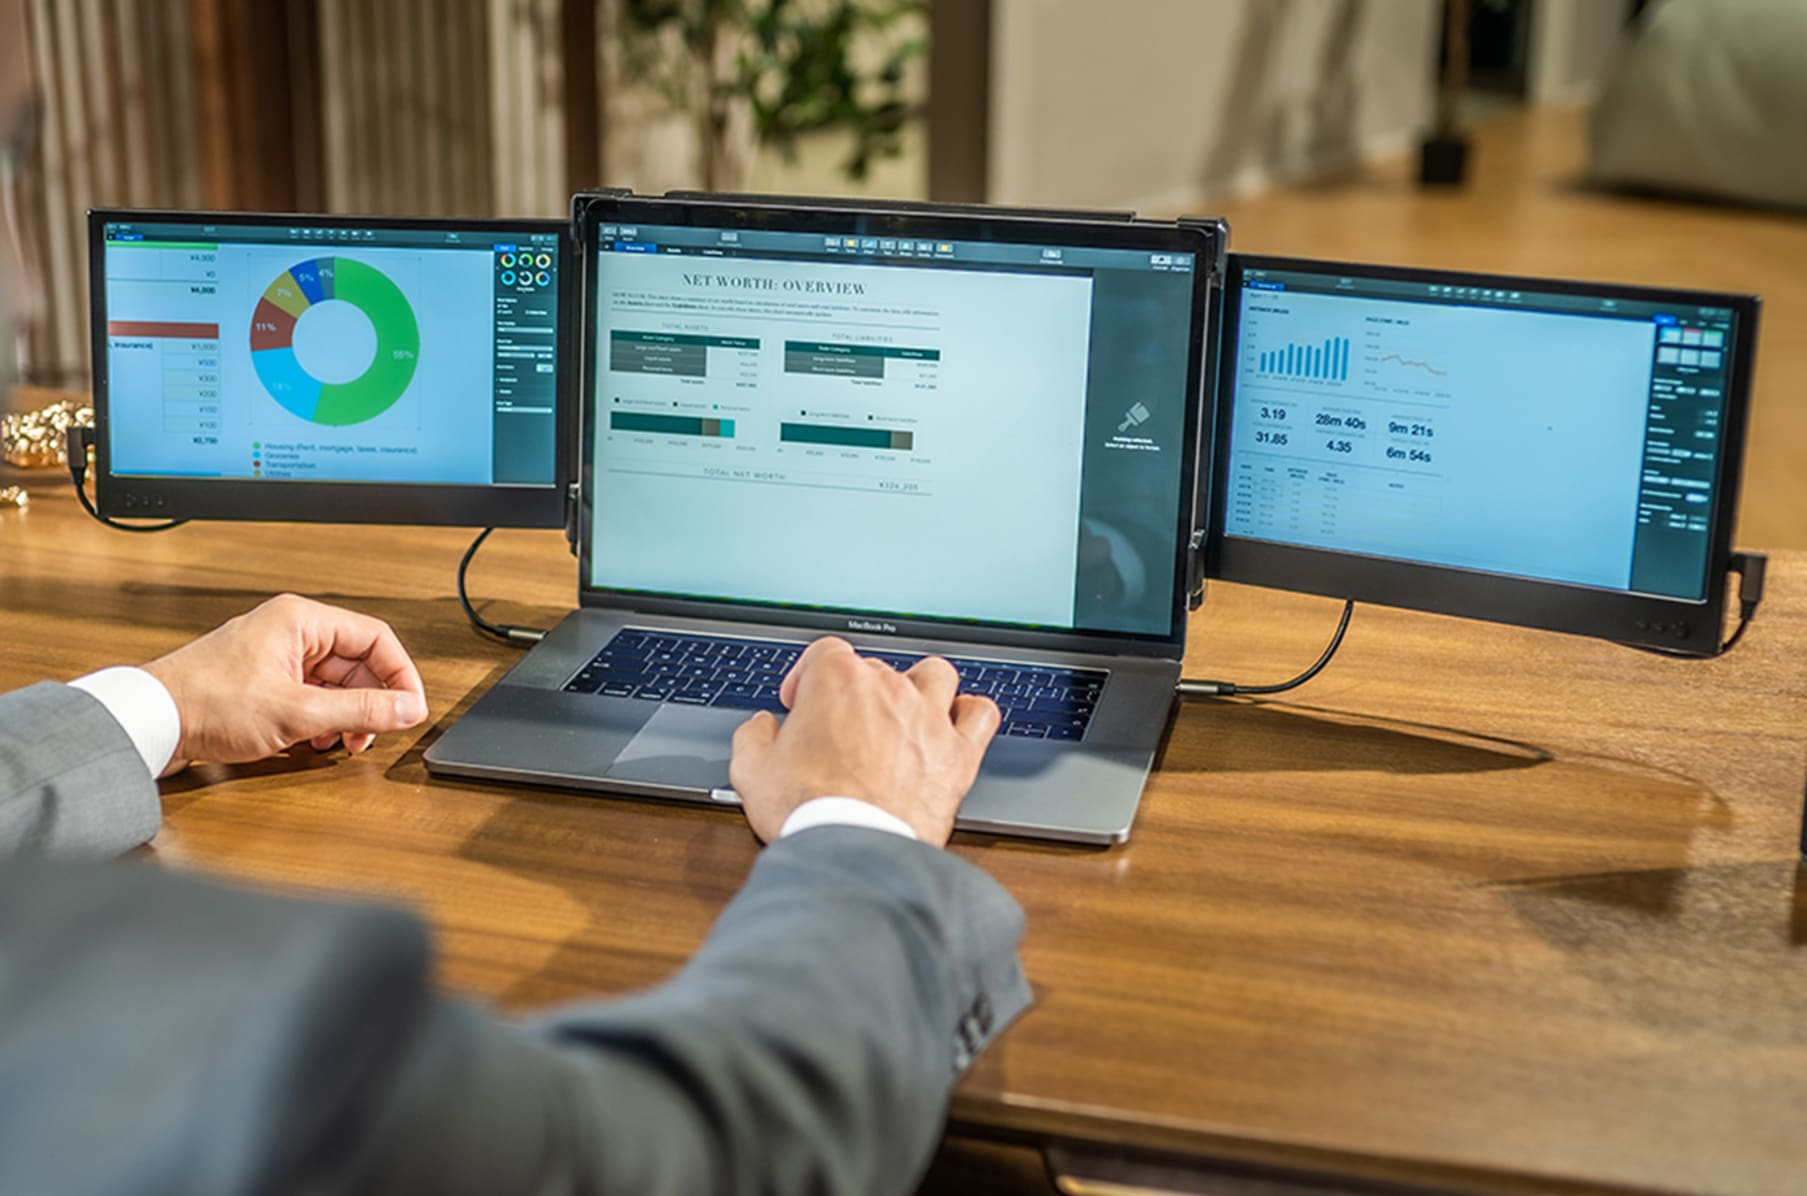 Exactly how to Set Up a Mobile External Monitor for Your Laptop